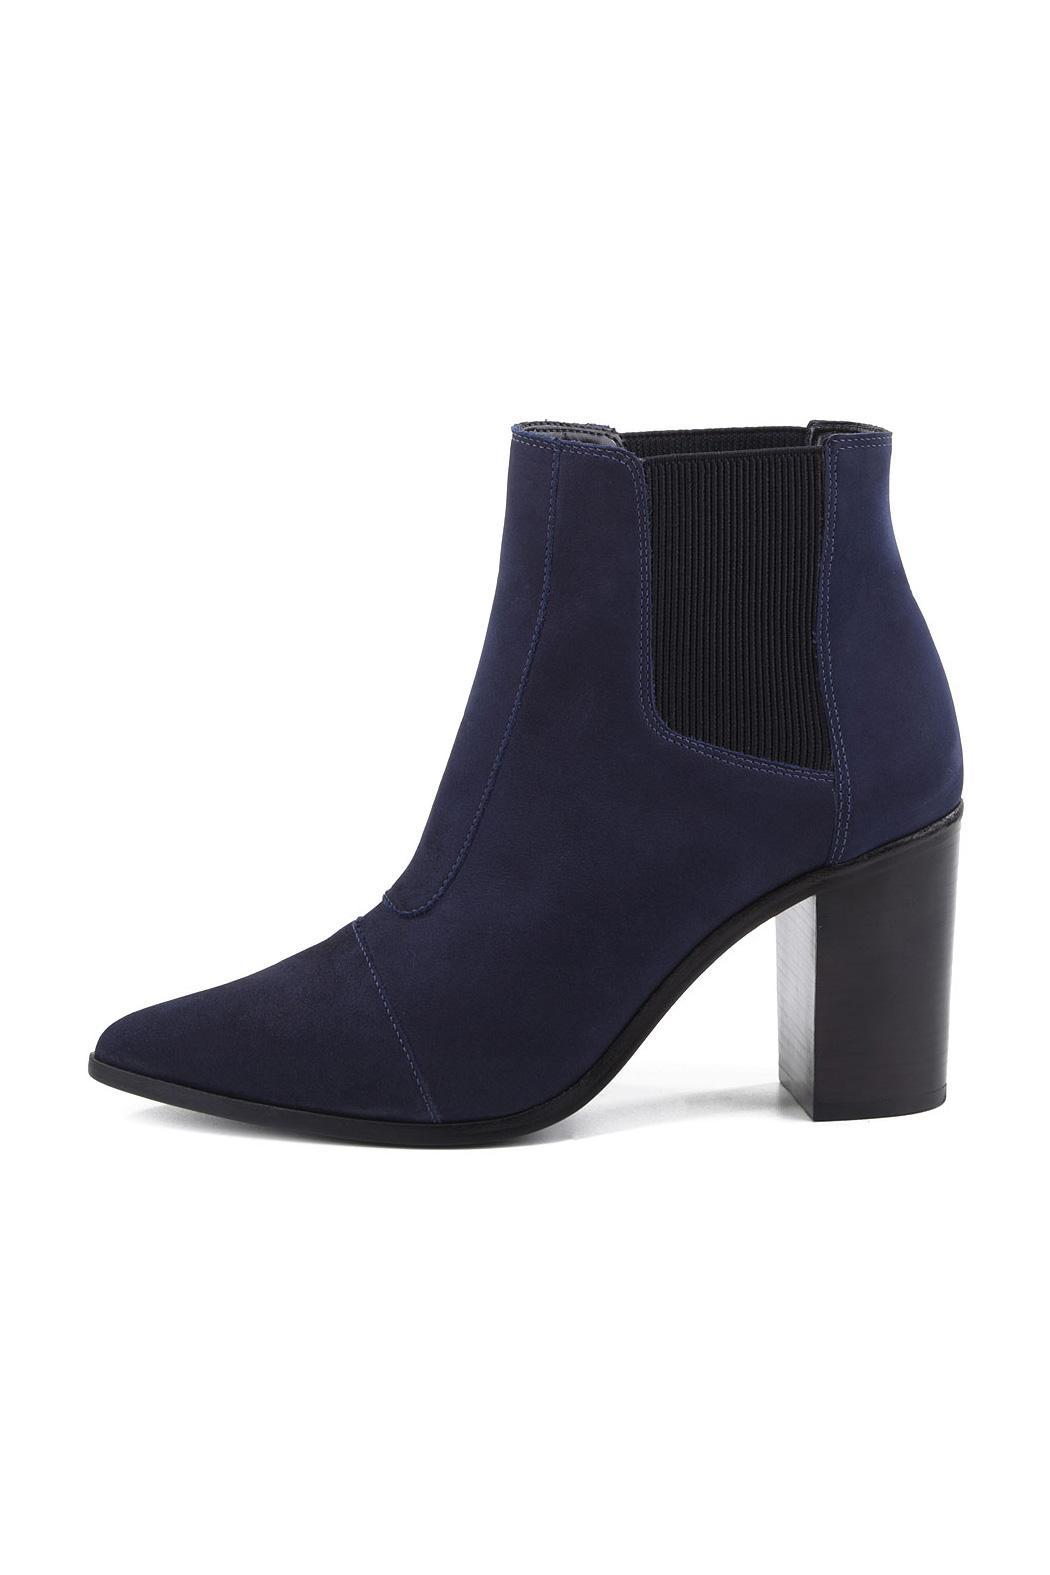 schutz heeled ankle boots from tel aviv by shoez web store